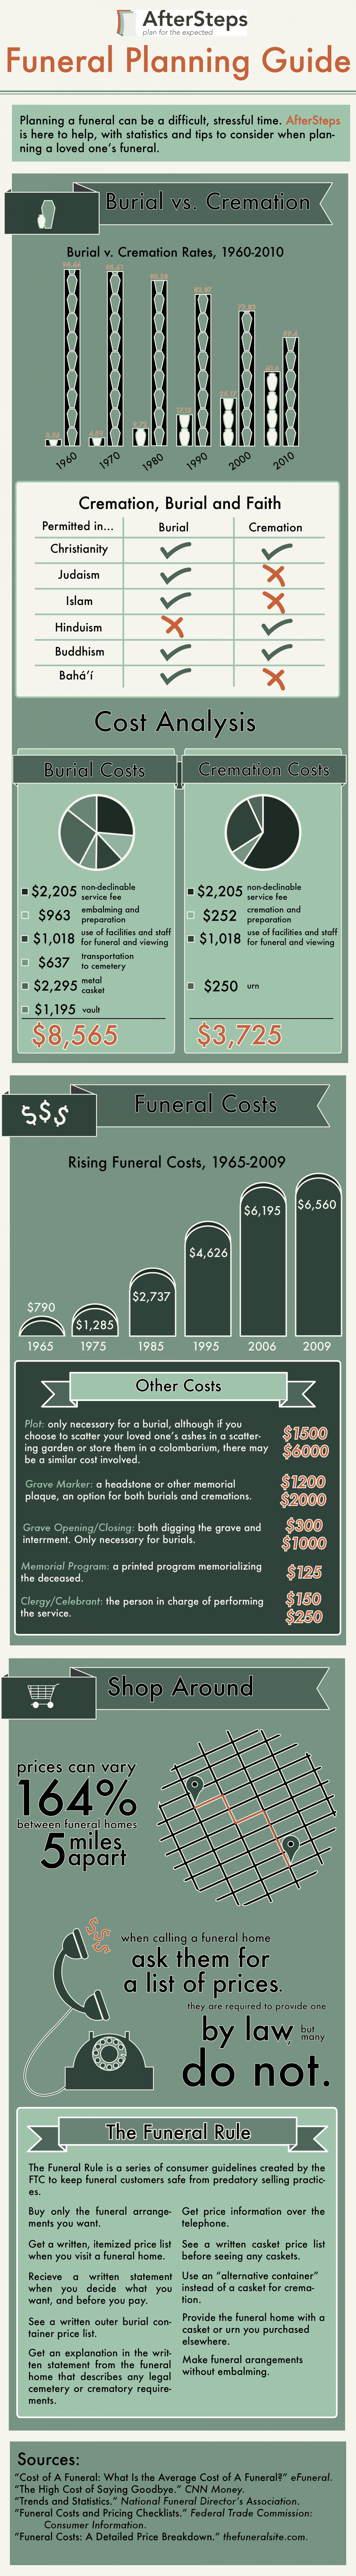 Funeral Planning Guide Infographic